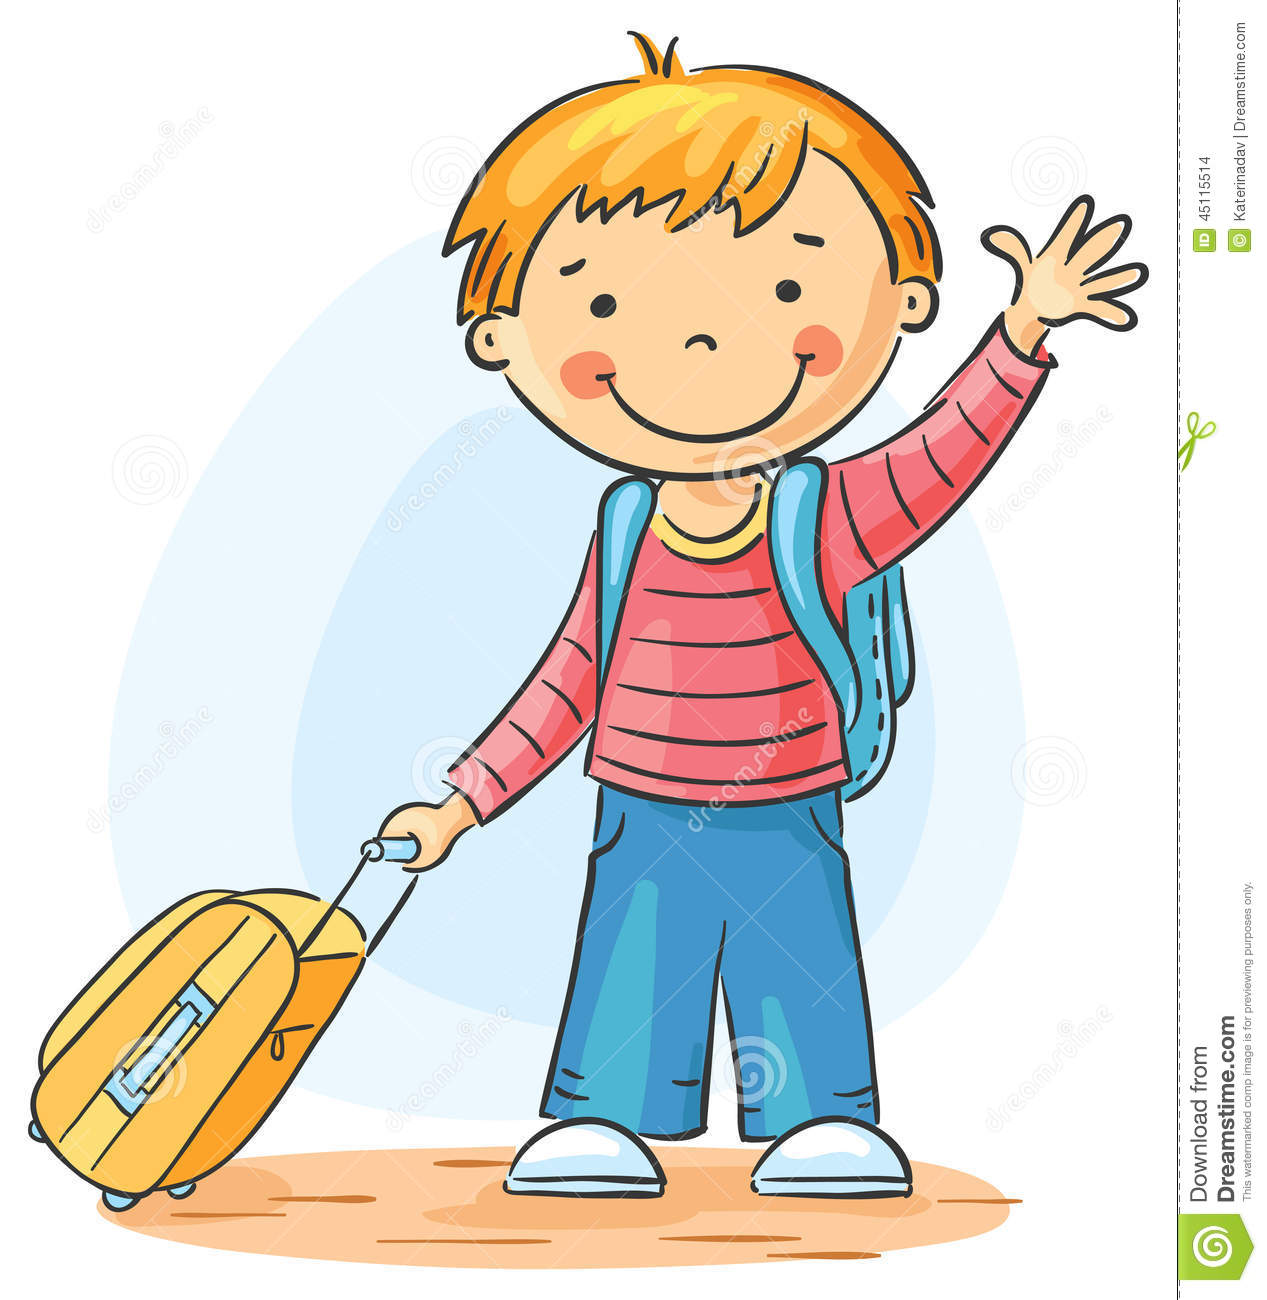 Hello! clipart nice kid Goode images 27736 Theater free